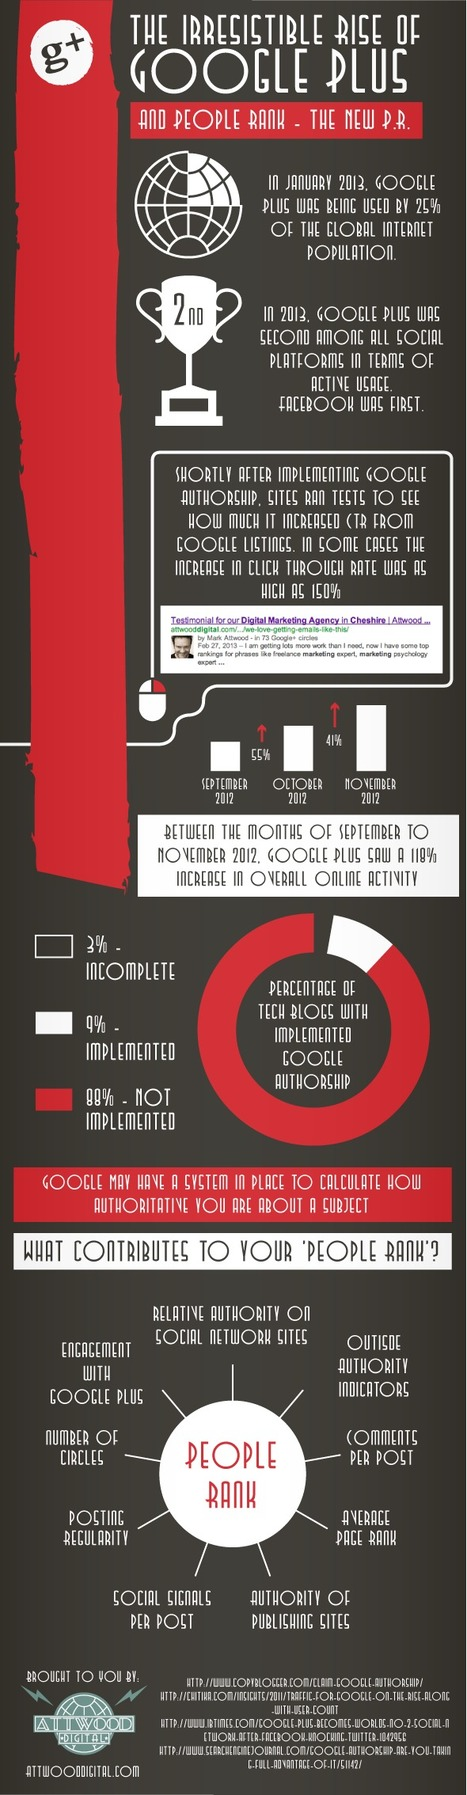 The Irresistible Rise Of Google Plus (Infographic) | Online tips & social media nieuws | Scoop.it